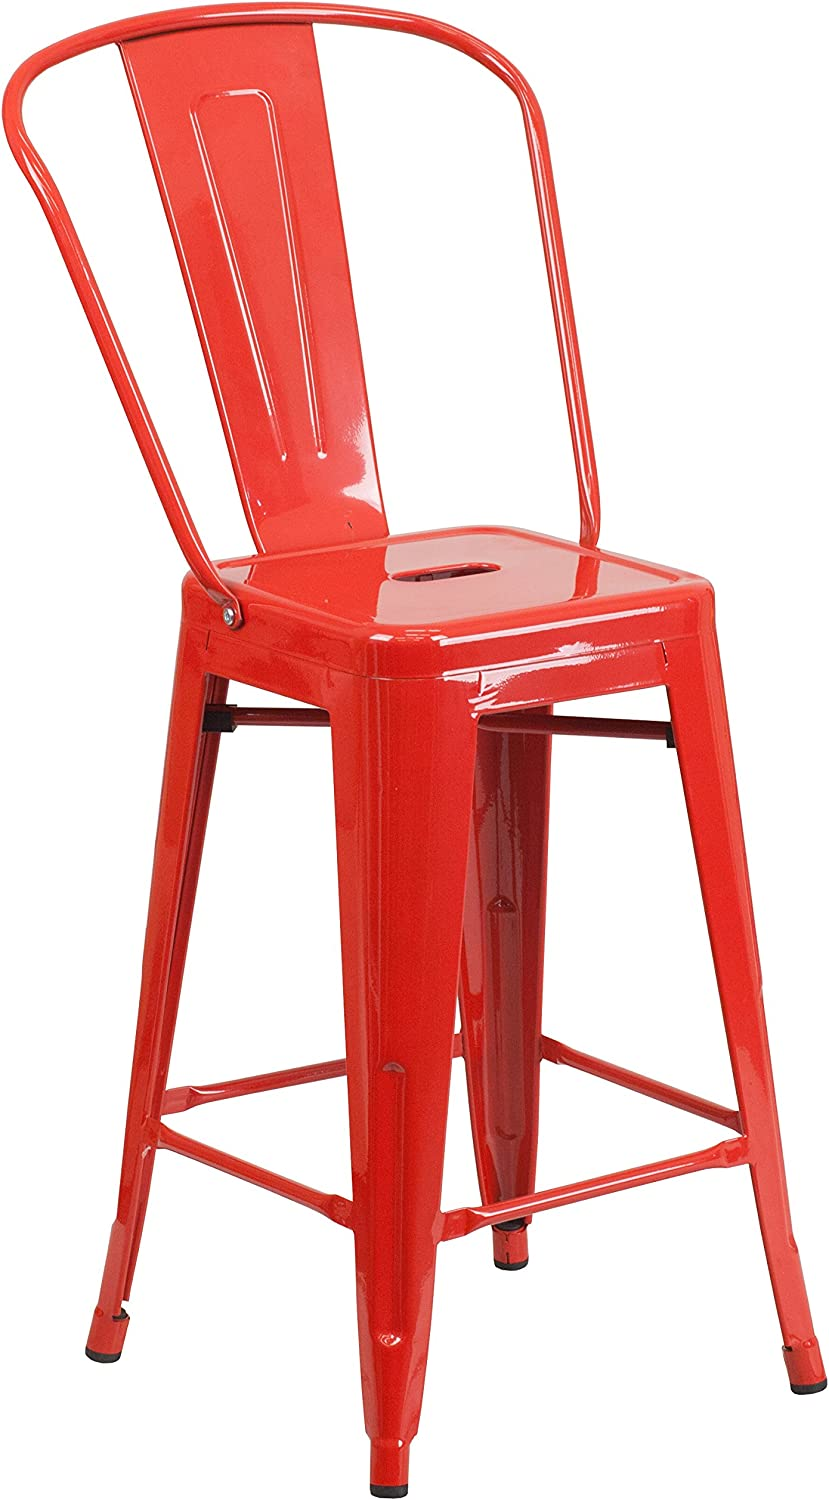 "Flash Furniture Commercial Grade 24"" High Red Metal Indoor-Outdoor Counter Height Stool with Removable Back"